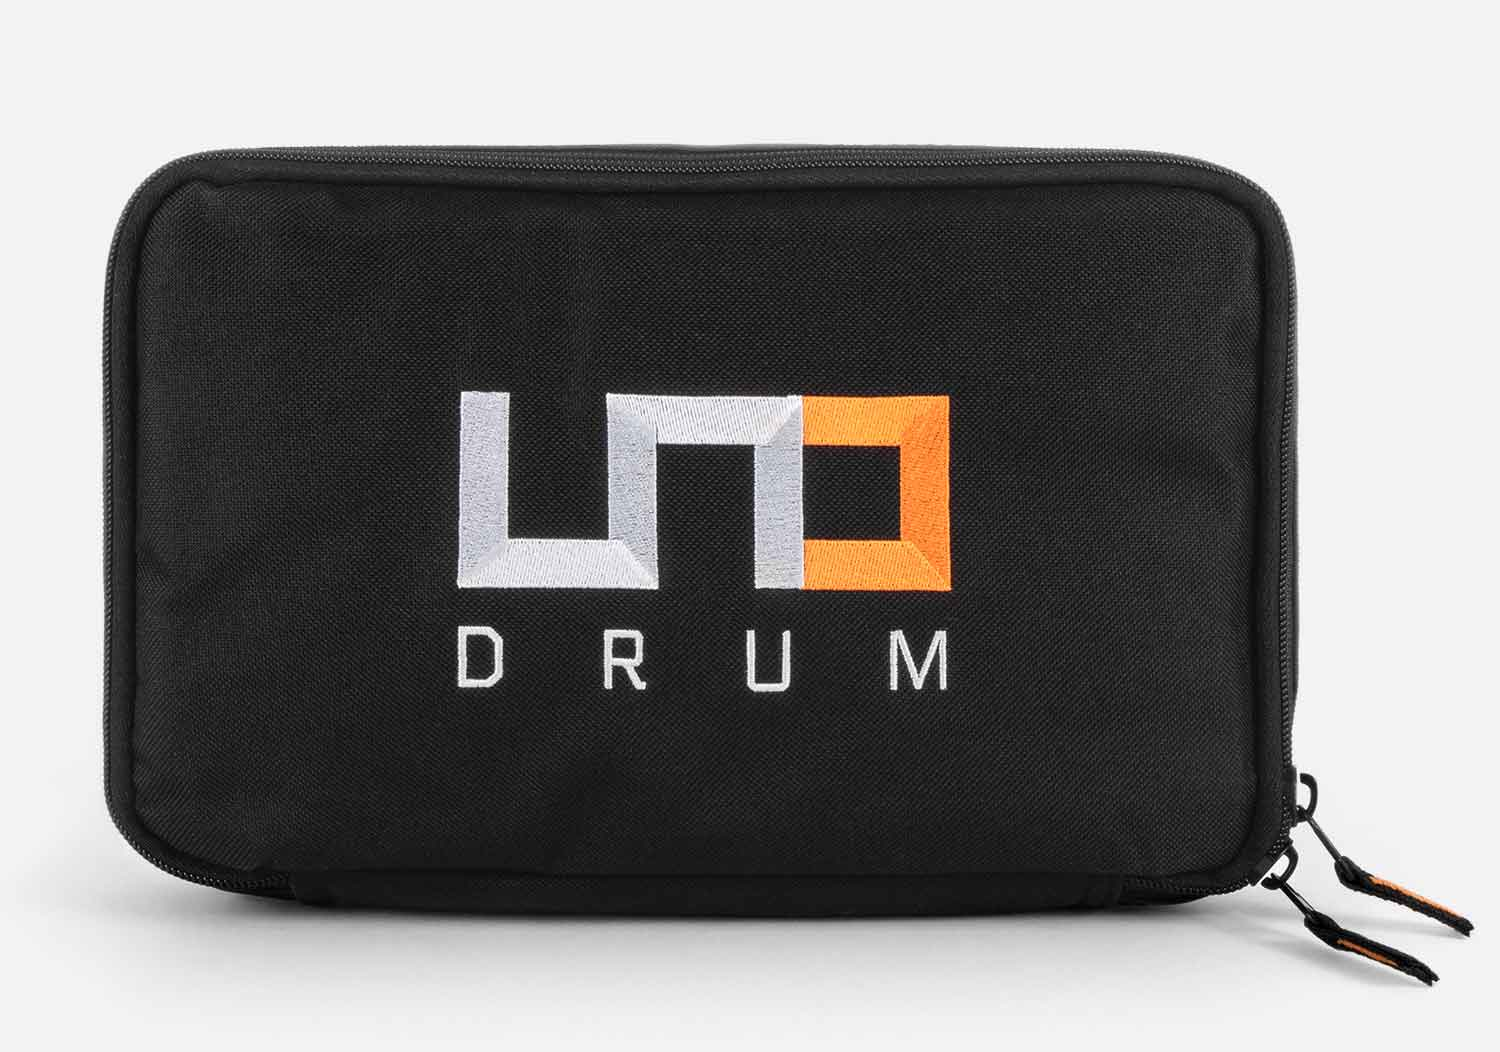 IK-Multimedia-Borsa-per-UNO-Drum-sku-2258739217002